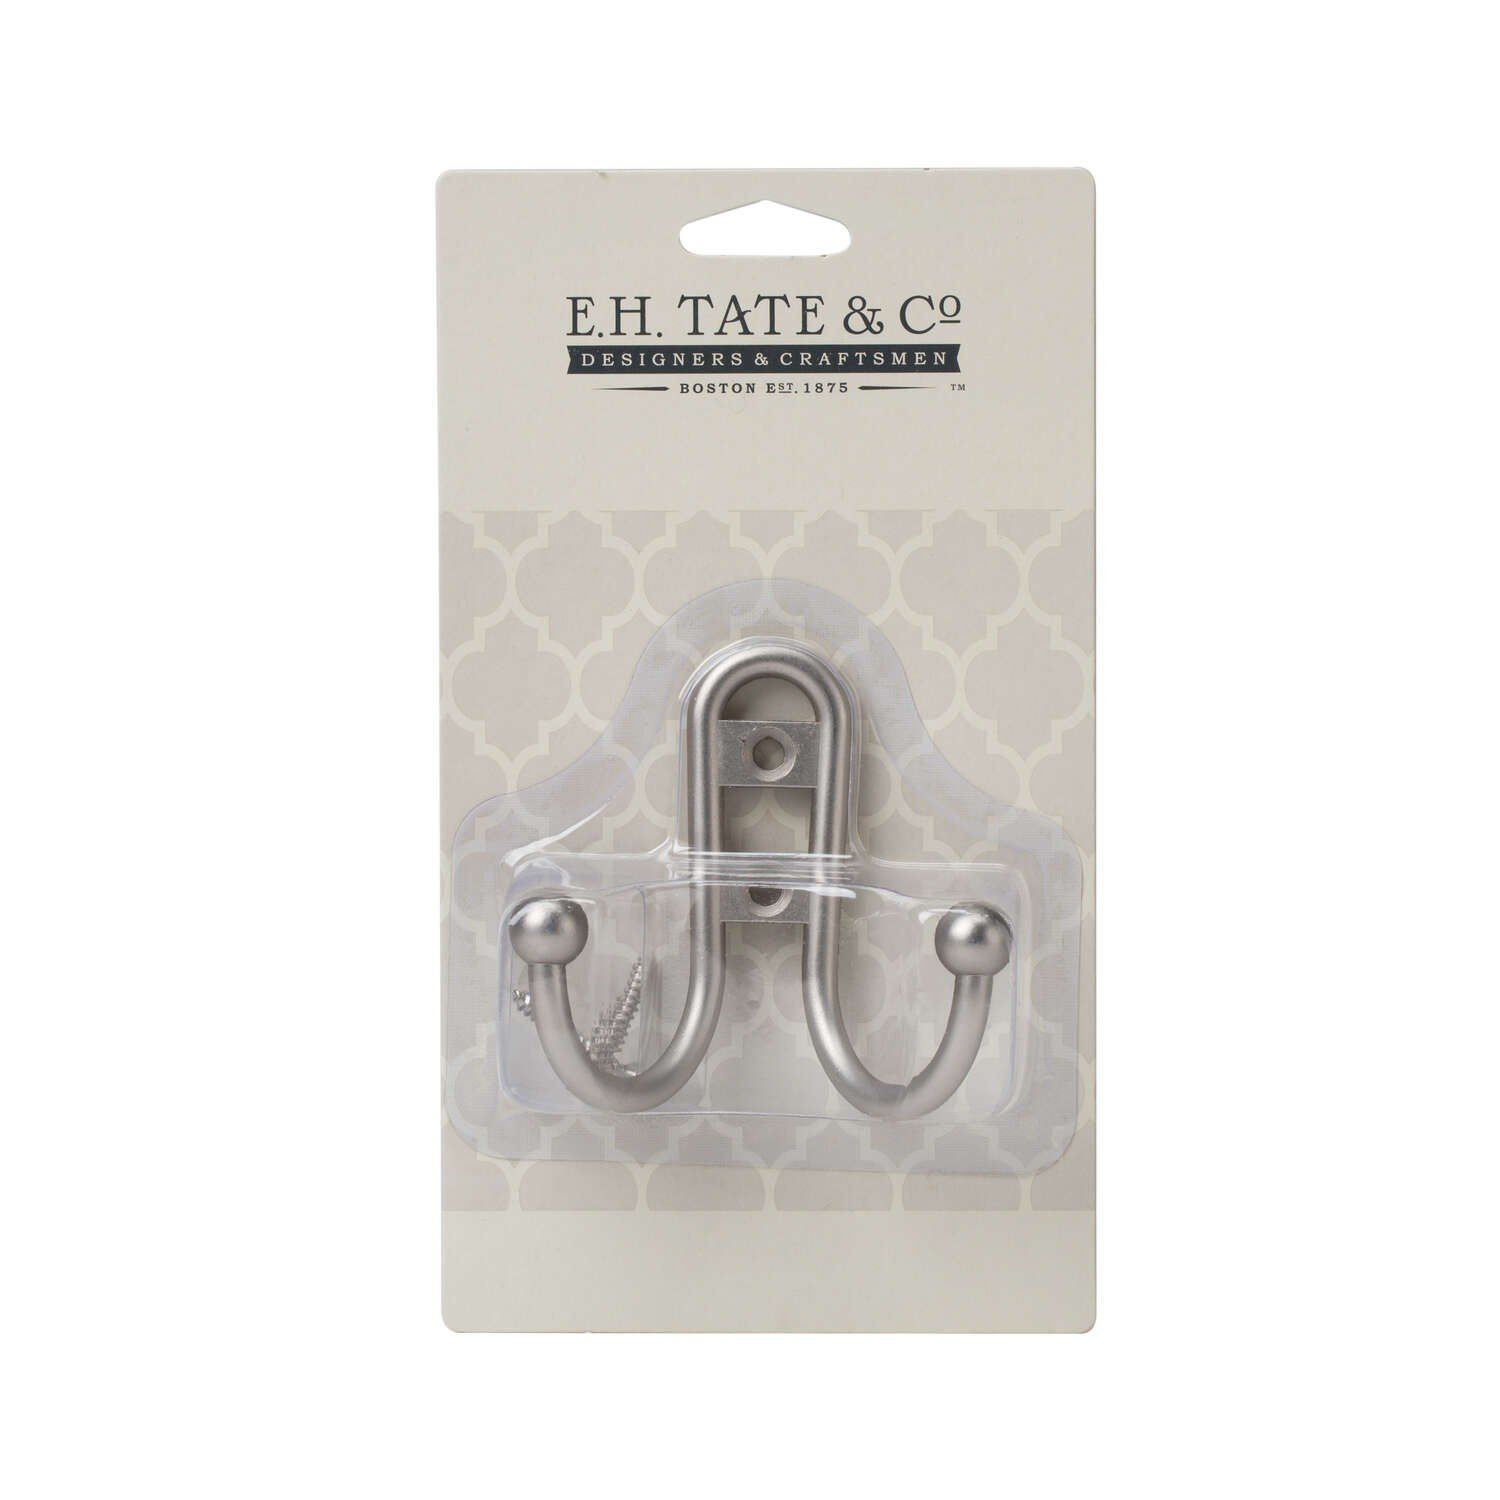 E.H. Tate & Co.  Satin Nickel  Silver  Metal  Double Hook  1 pk